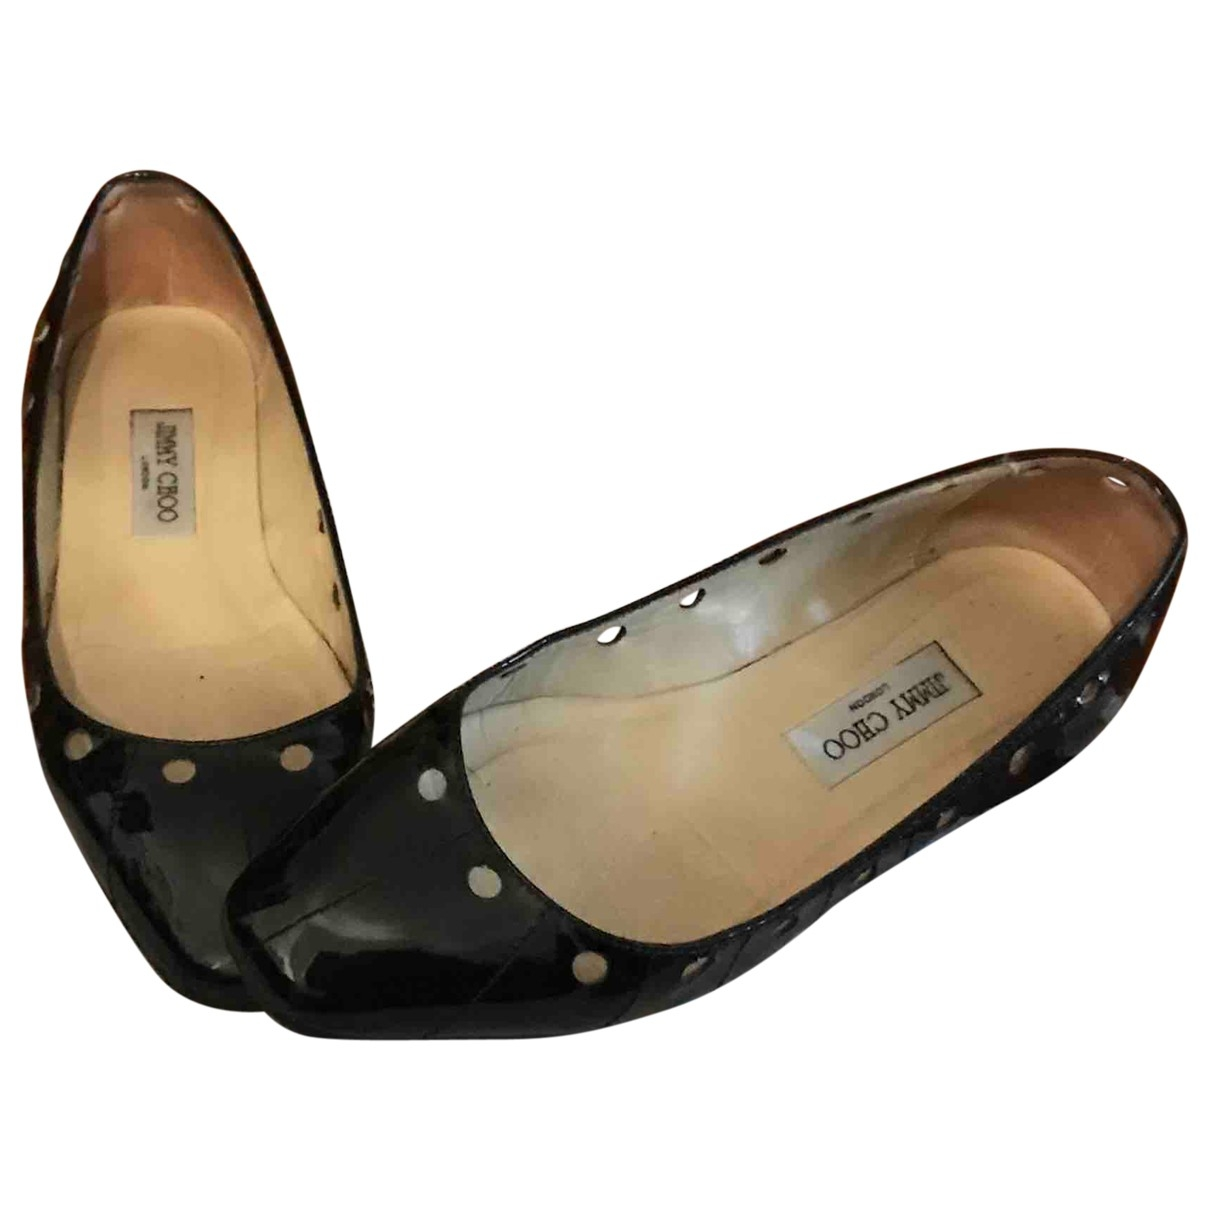 Jimmy Choo \N Black Patent leather Ballet flats for Women 39 EU